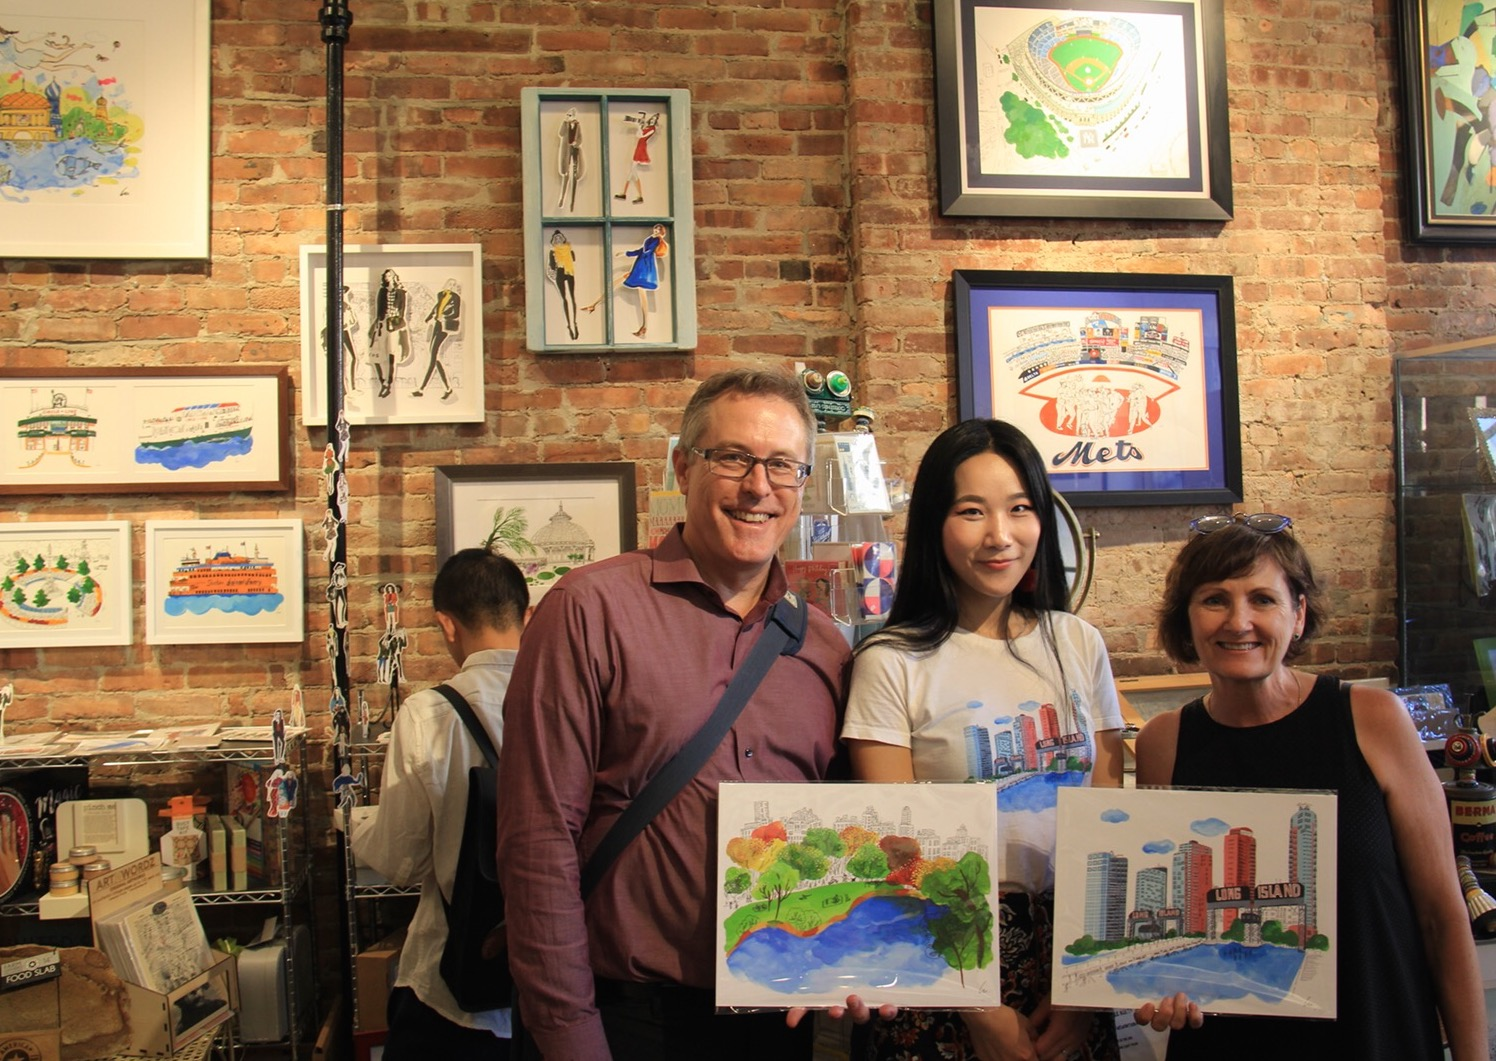 LULU x Matted LIC  Lulu's New York theme Illustration SOLO Exhibition opening night at Matted LIC at July 19th 2018.